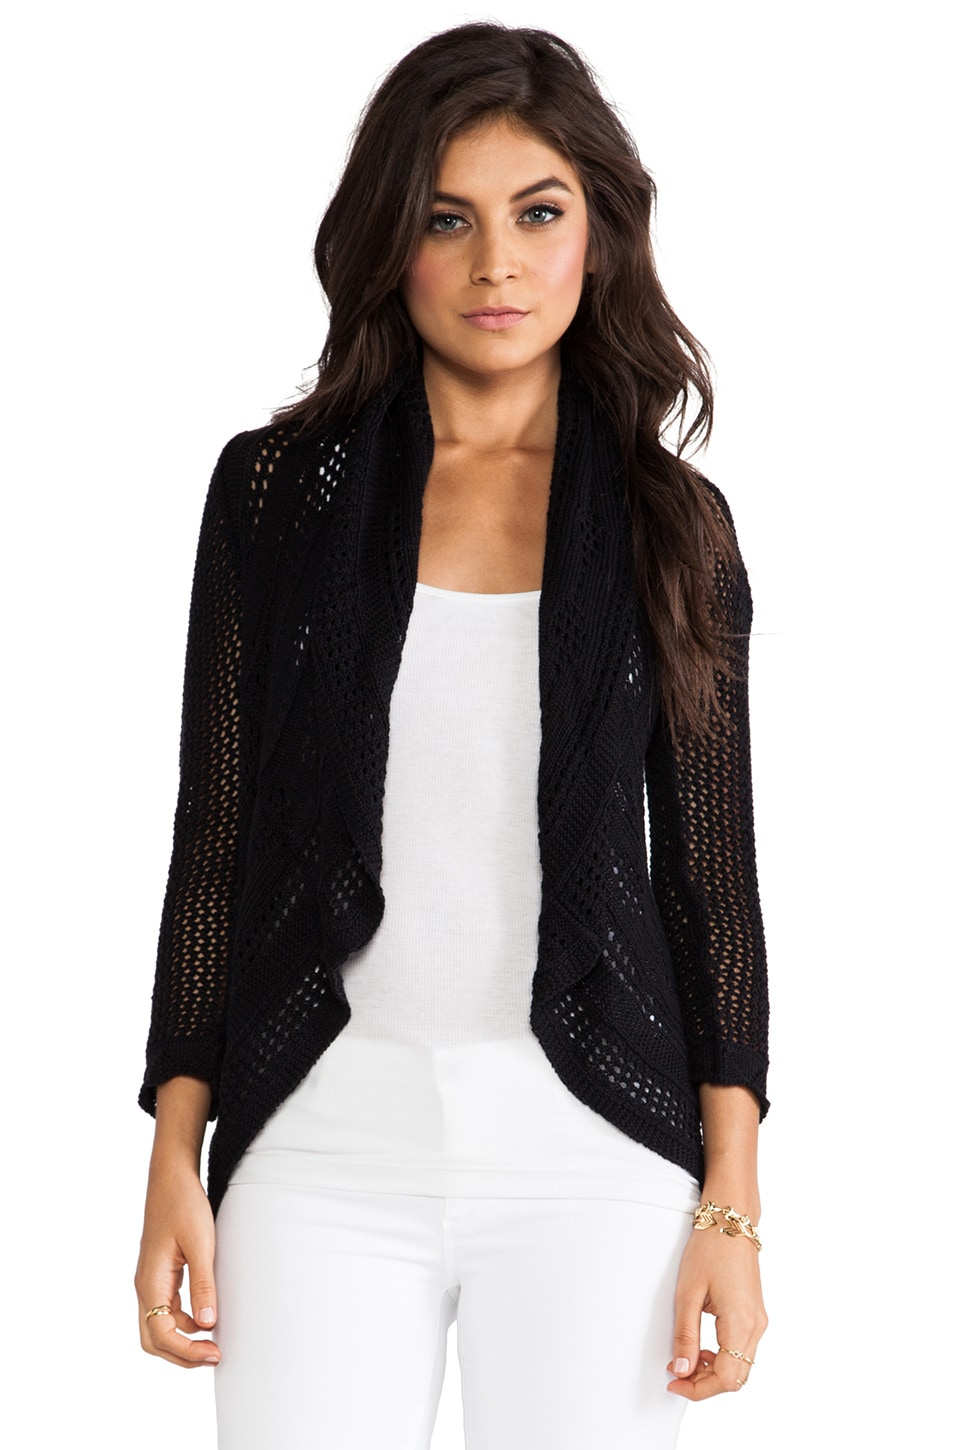 Autumn Cashmere 3/4 Sleeve Pointelle Drape Cardi in Black